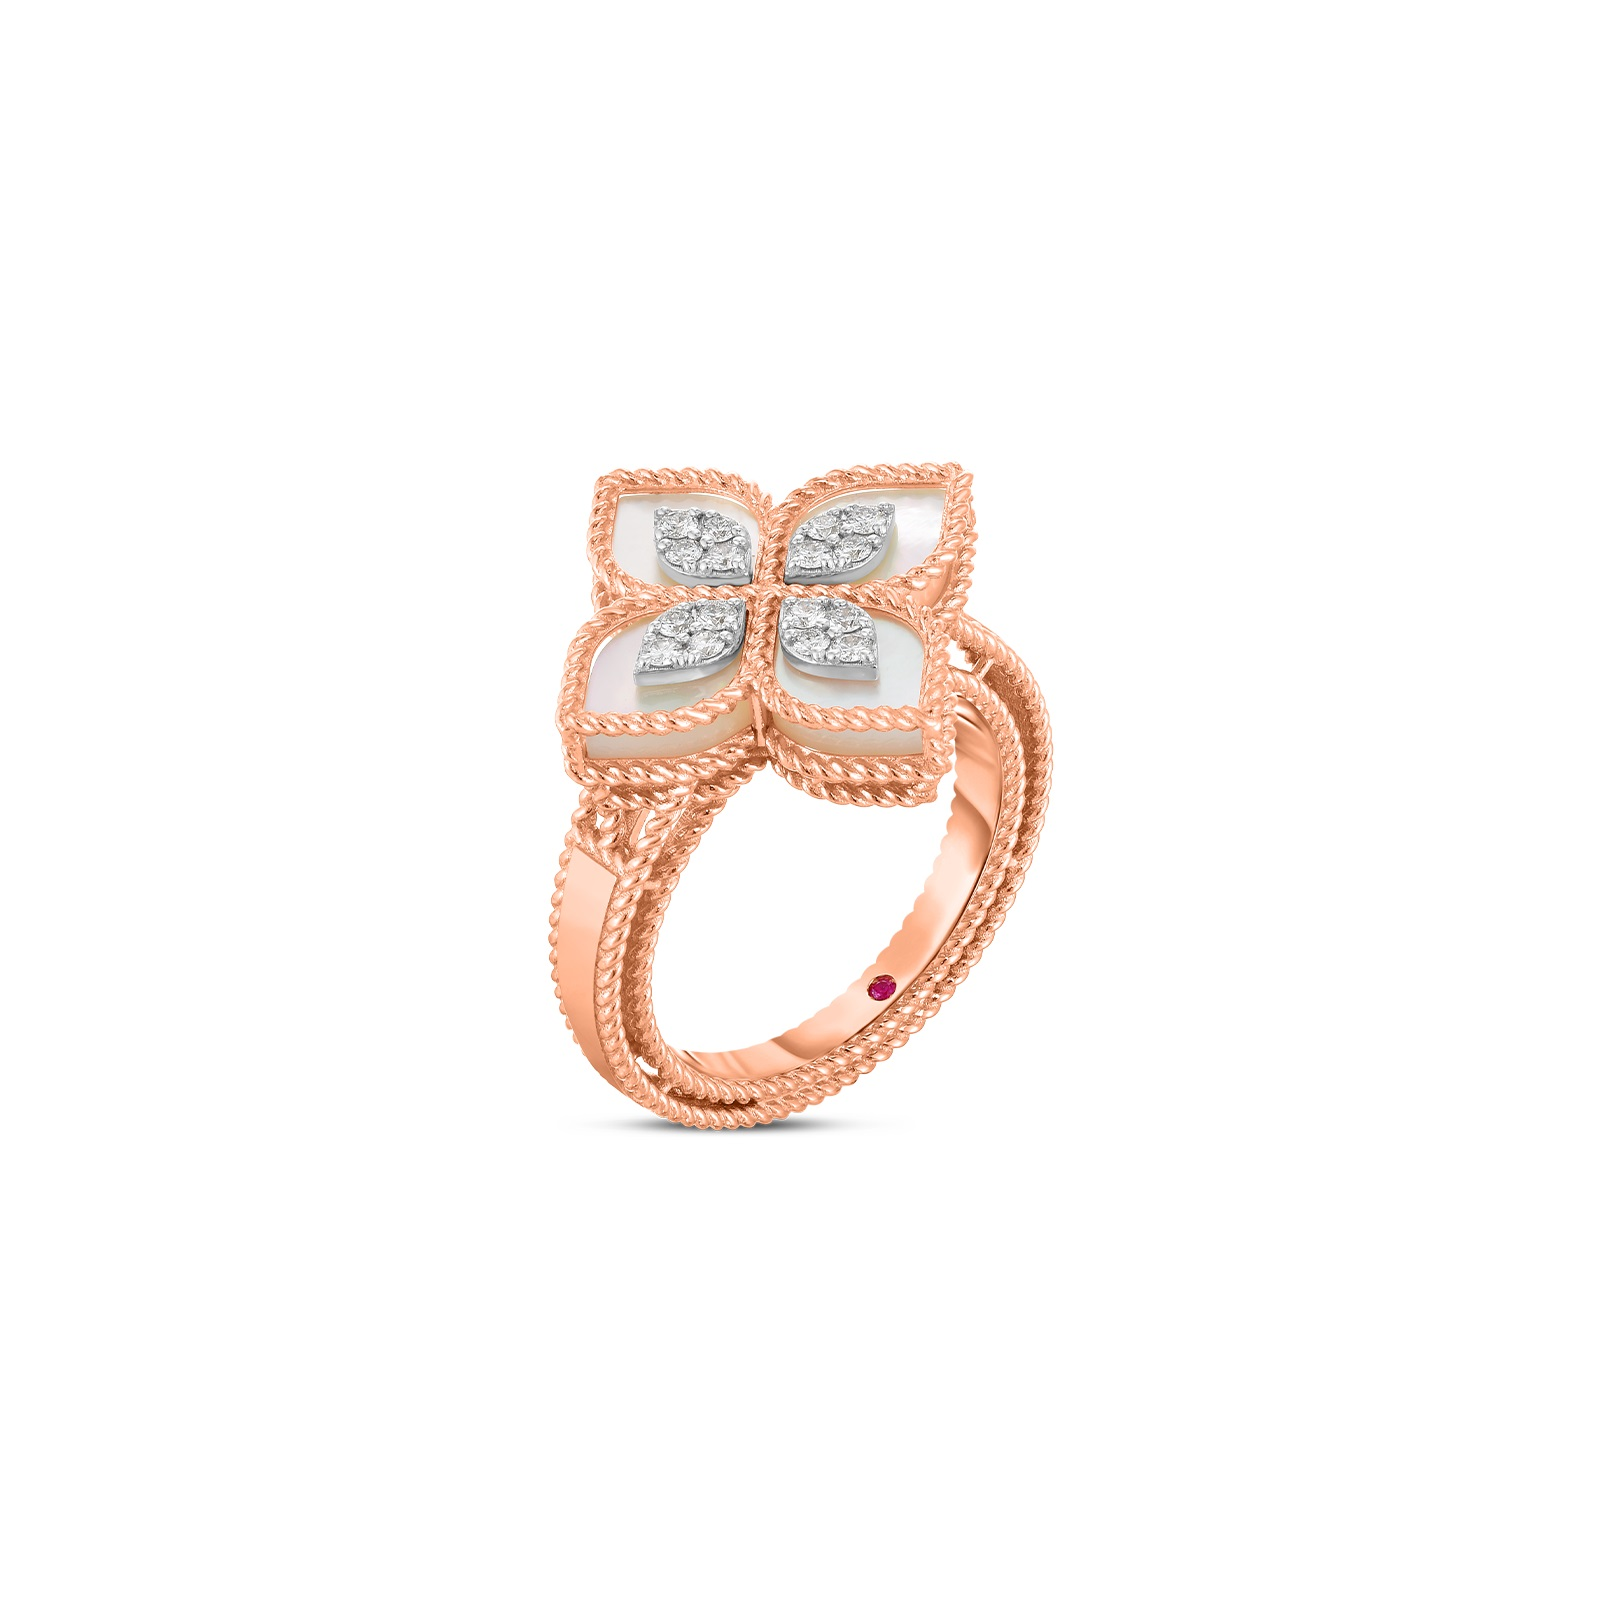 Roberto Coin 18K Rose Gold .16cts  Diamonds Gold Ring with Stones 8882784AH65X